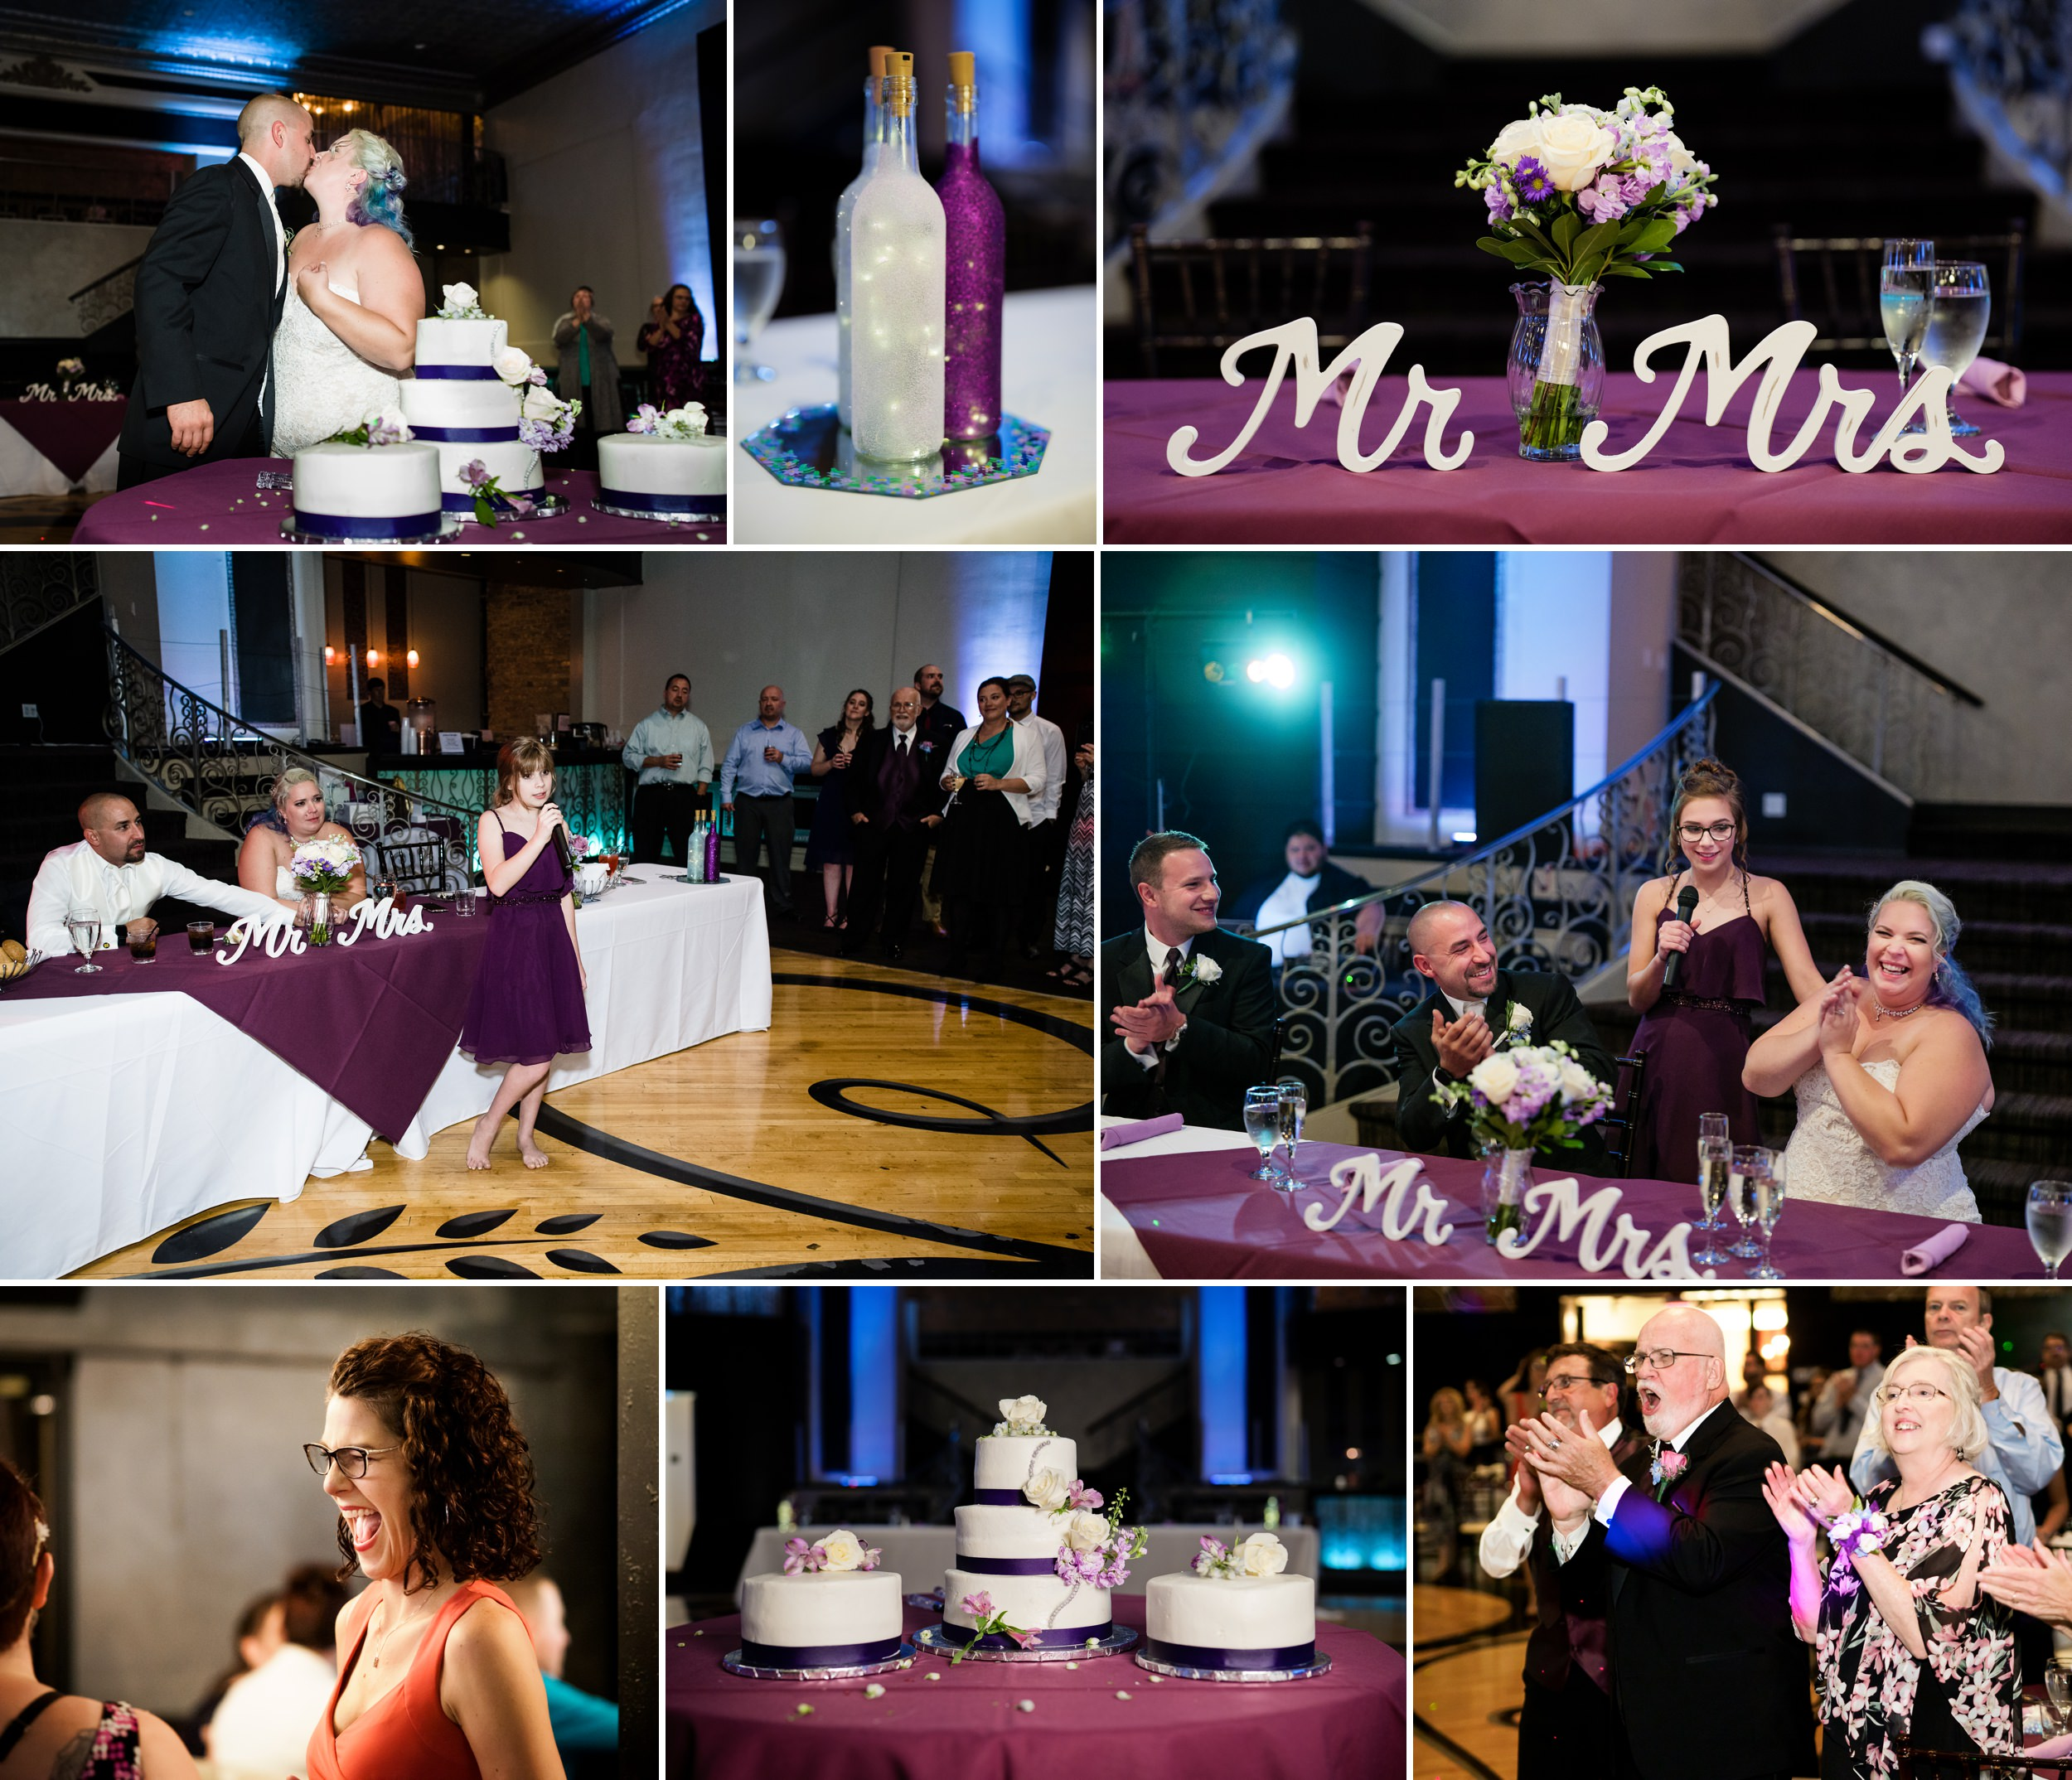 A wedding reception decorated in the color purple at The Allure.